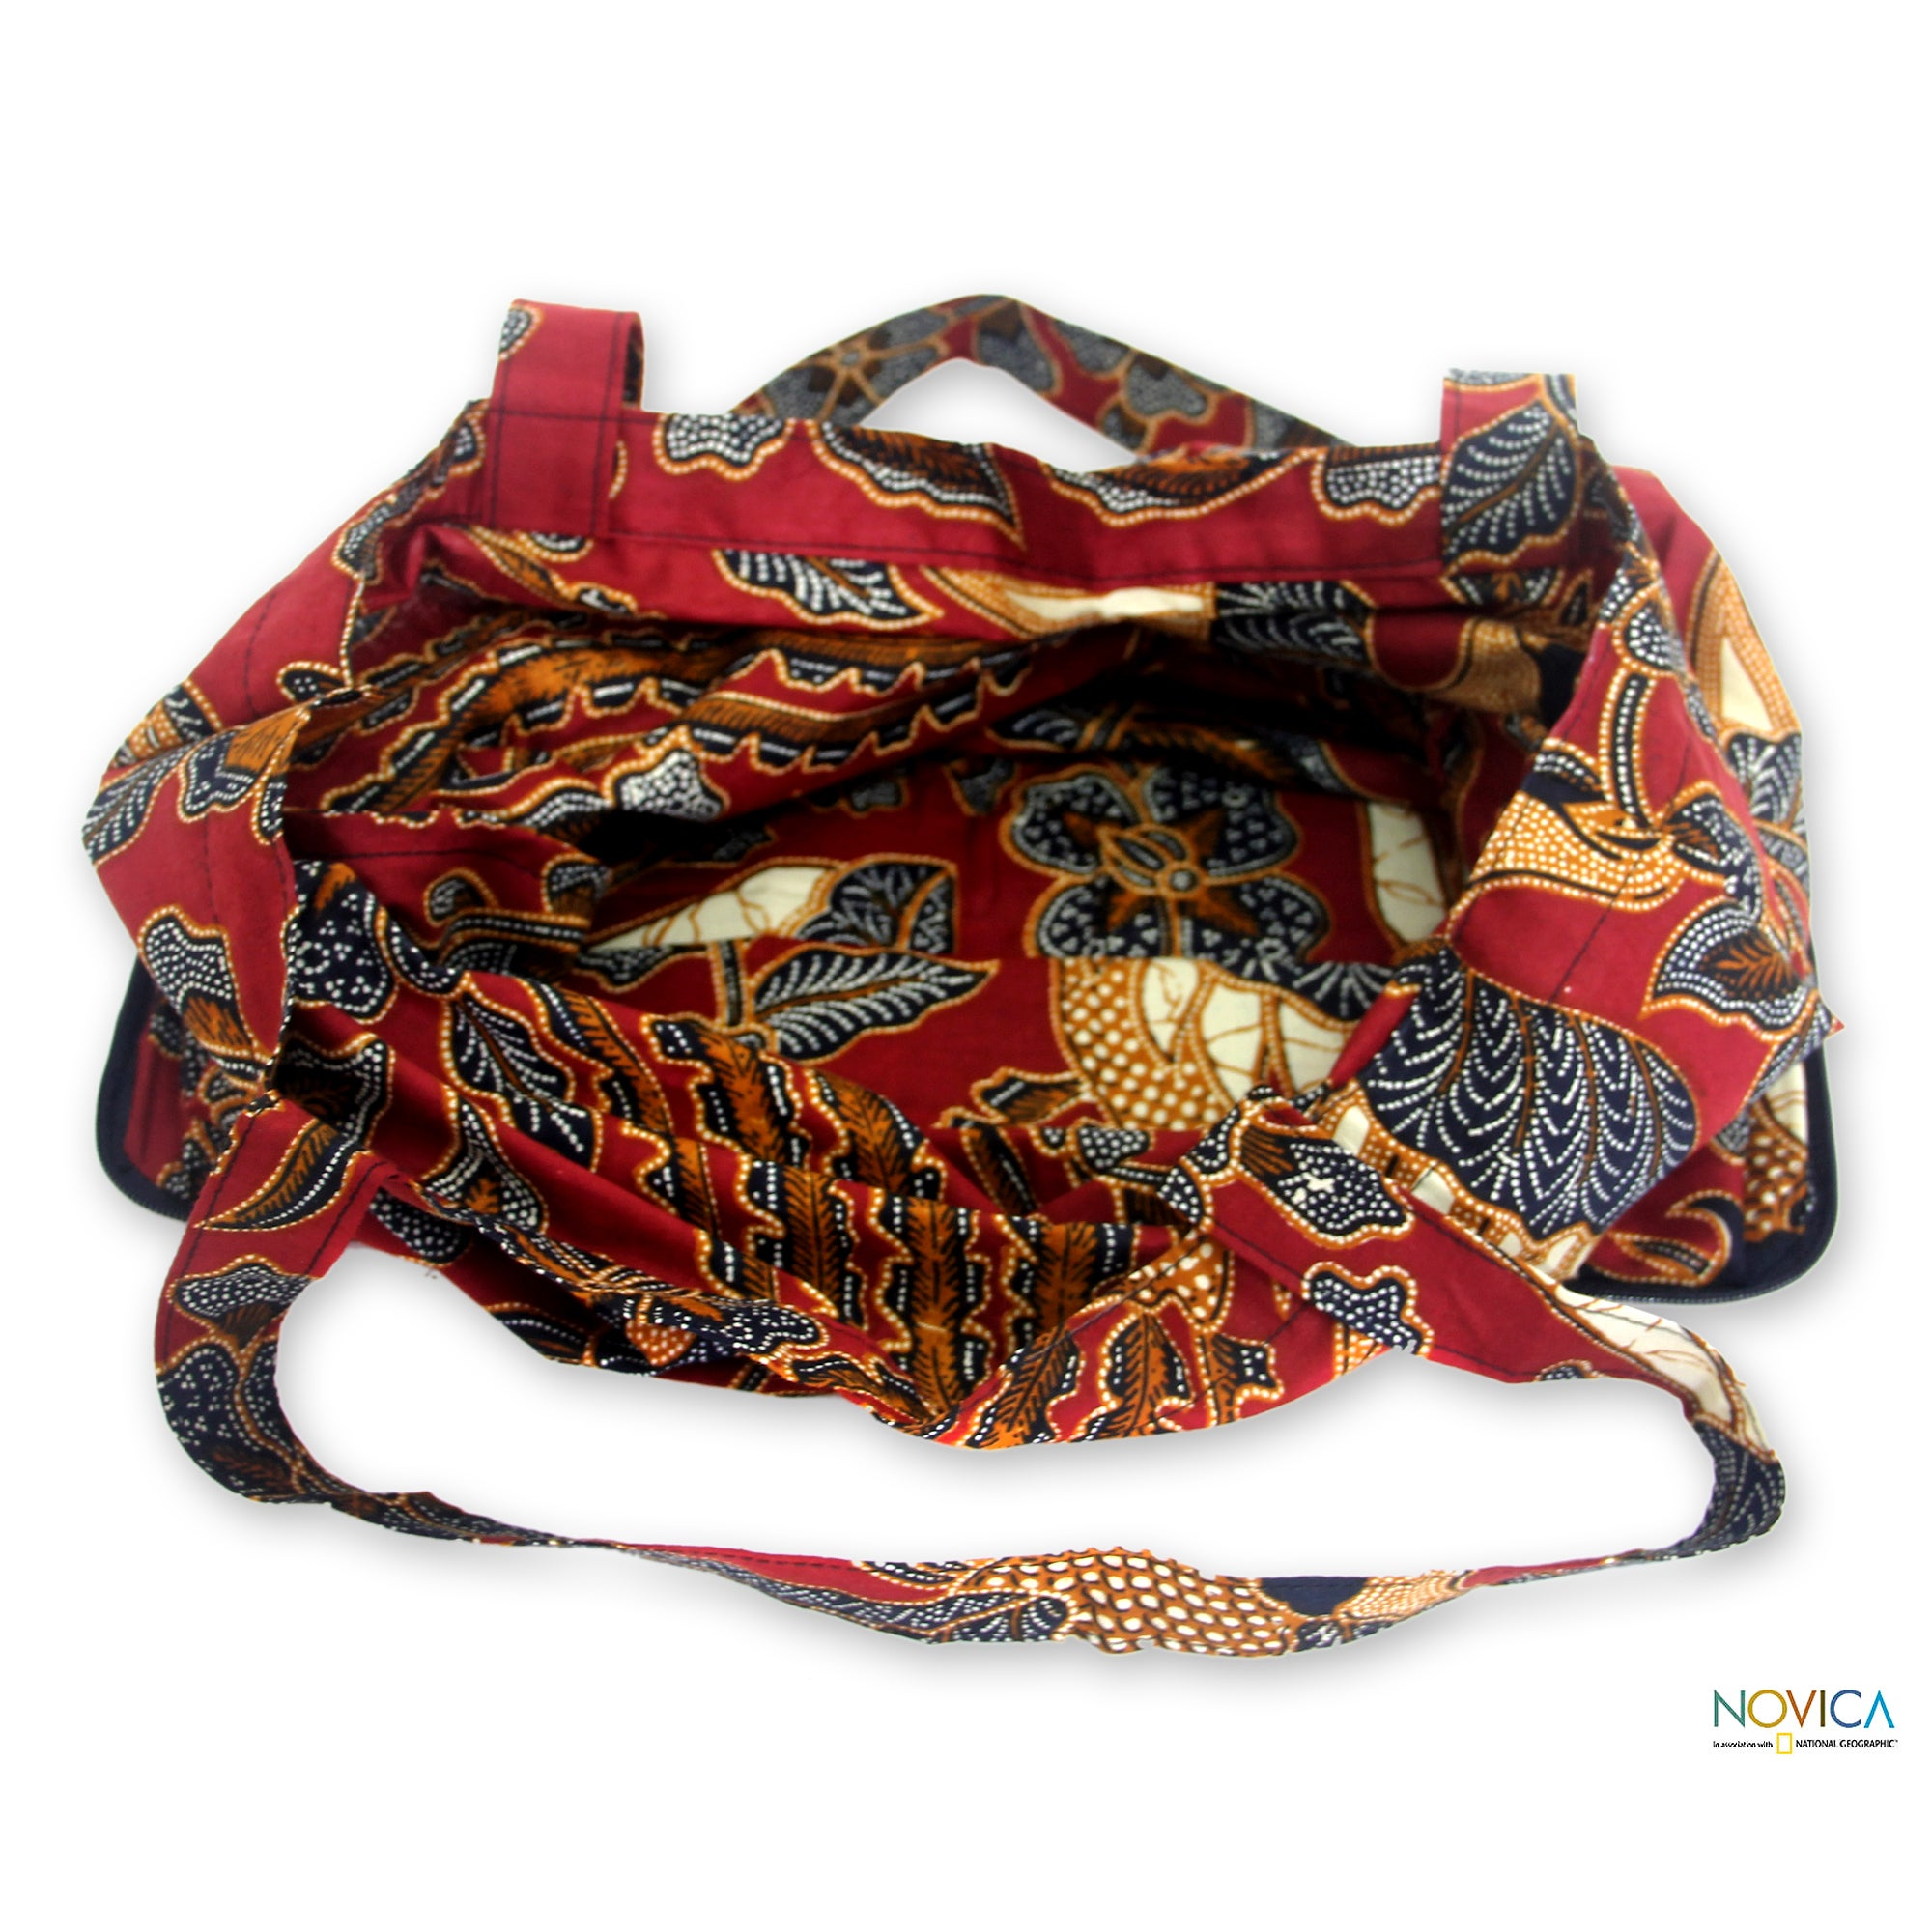 09a074da82 Shop Large Cotton  Surakarta Legacy  Batik Foldable Tote Bag (Indonesia) -  On Sale - Free Shipping On Orders Over  45 - Overstock - 7301070